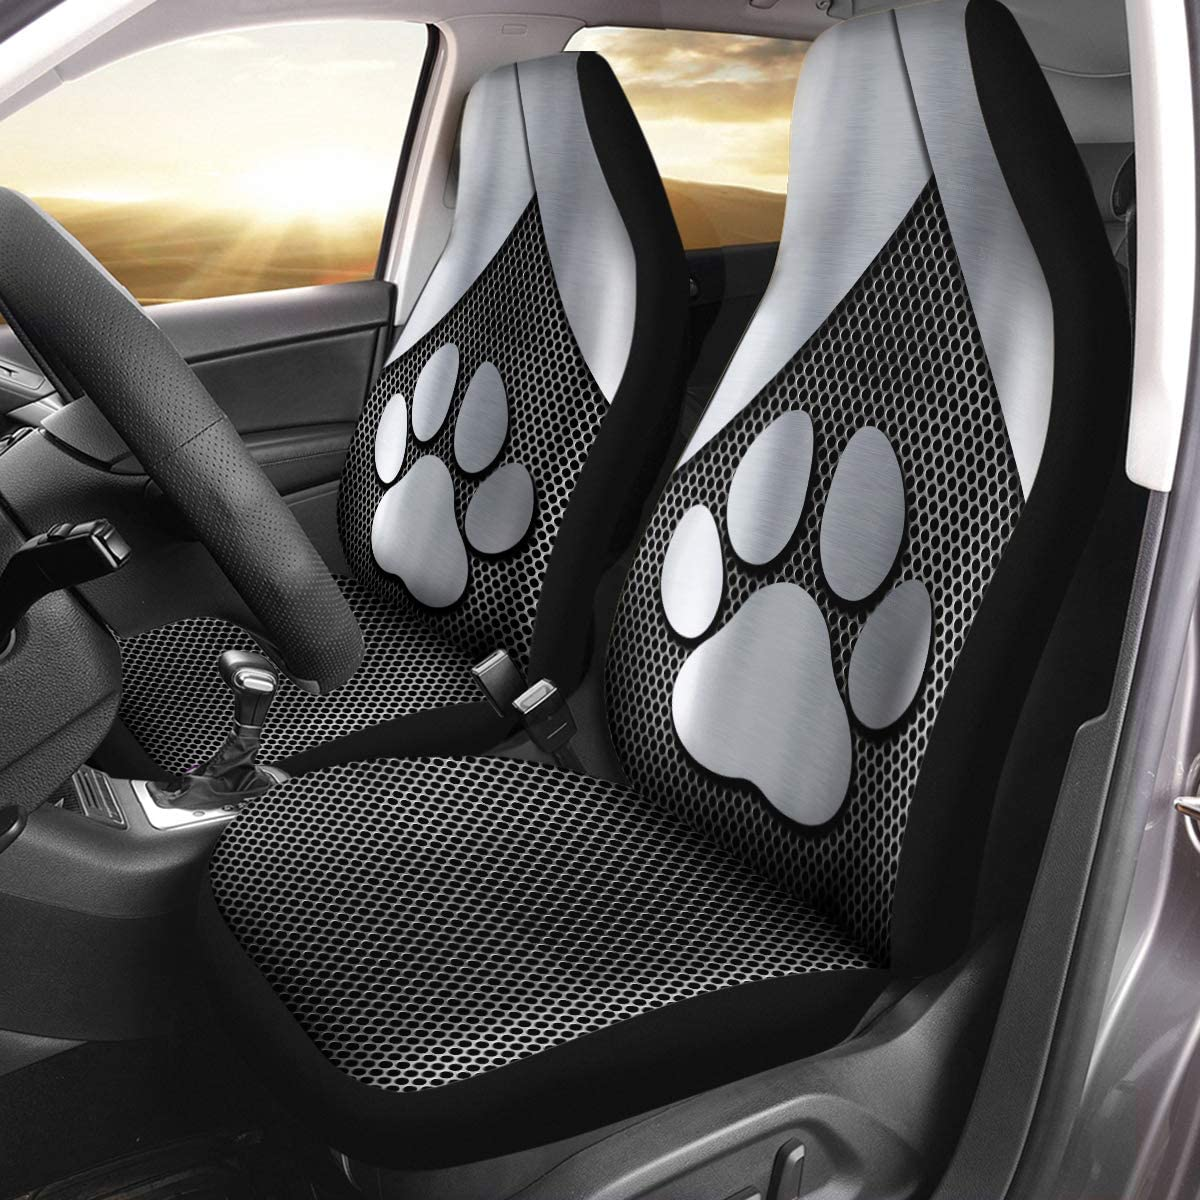 VTH Global Dog Paw Print 3D Silver Metal Airbag Compatible Seat Covers Car Accessories Size Universal Fit for Most Cars SUV Truck